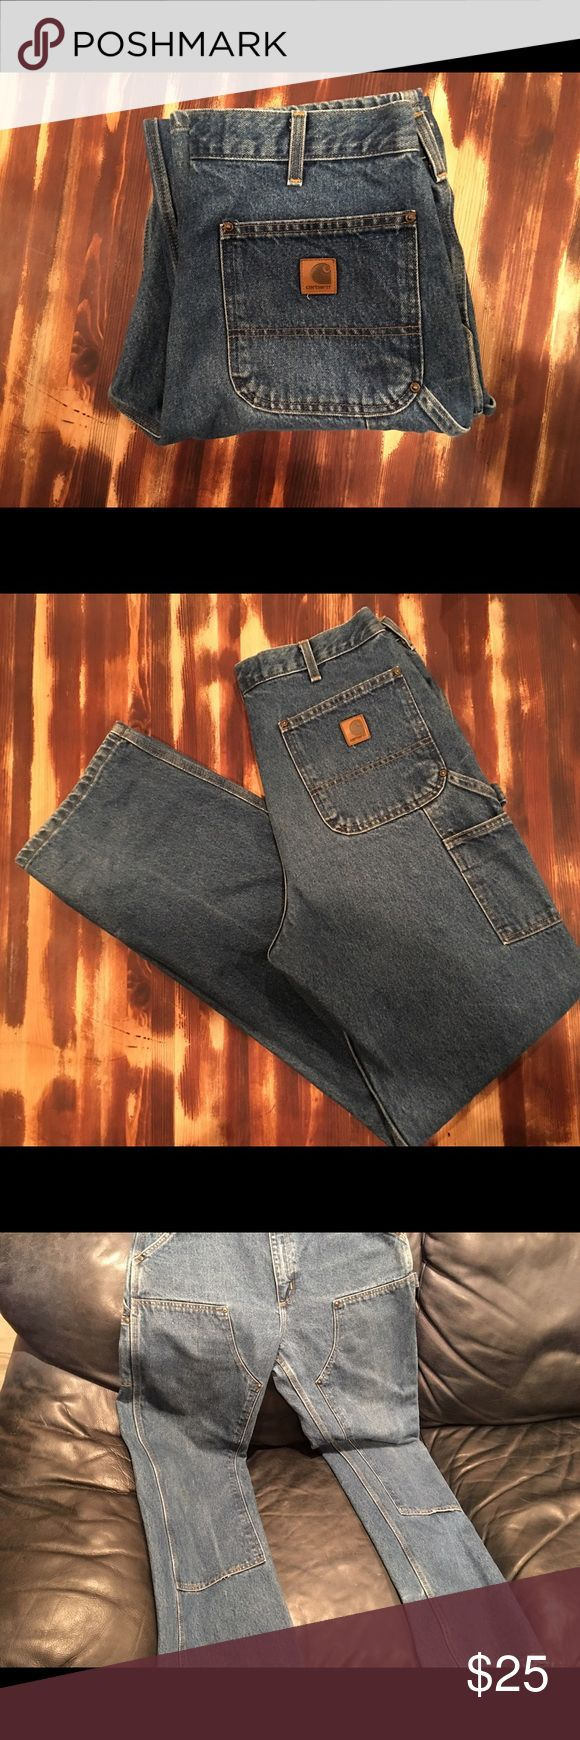 Carhartt carpenter work jeans Double denim Carhartt jeans in great condition!!!  Size 34X36. Carhartt Jeans